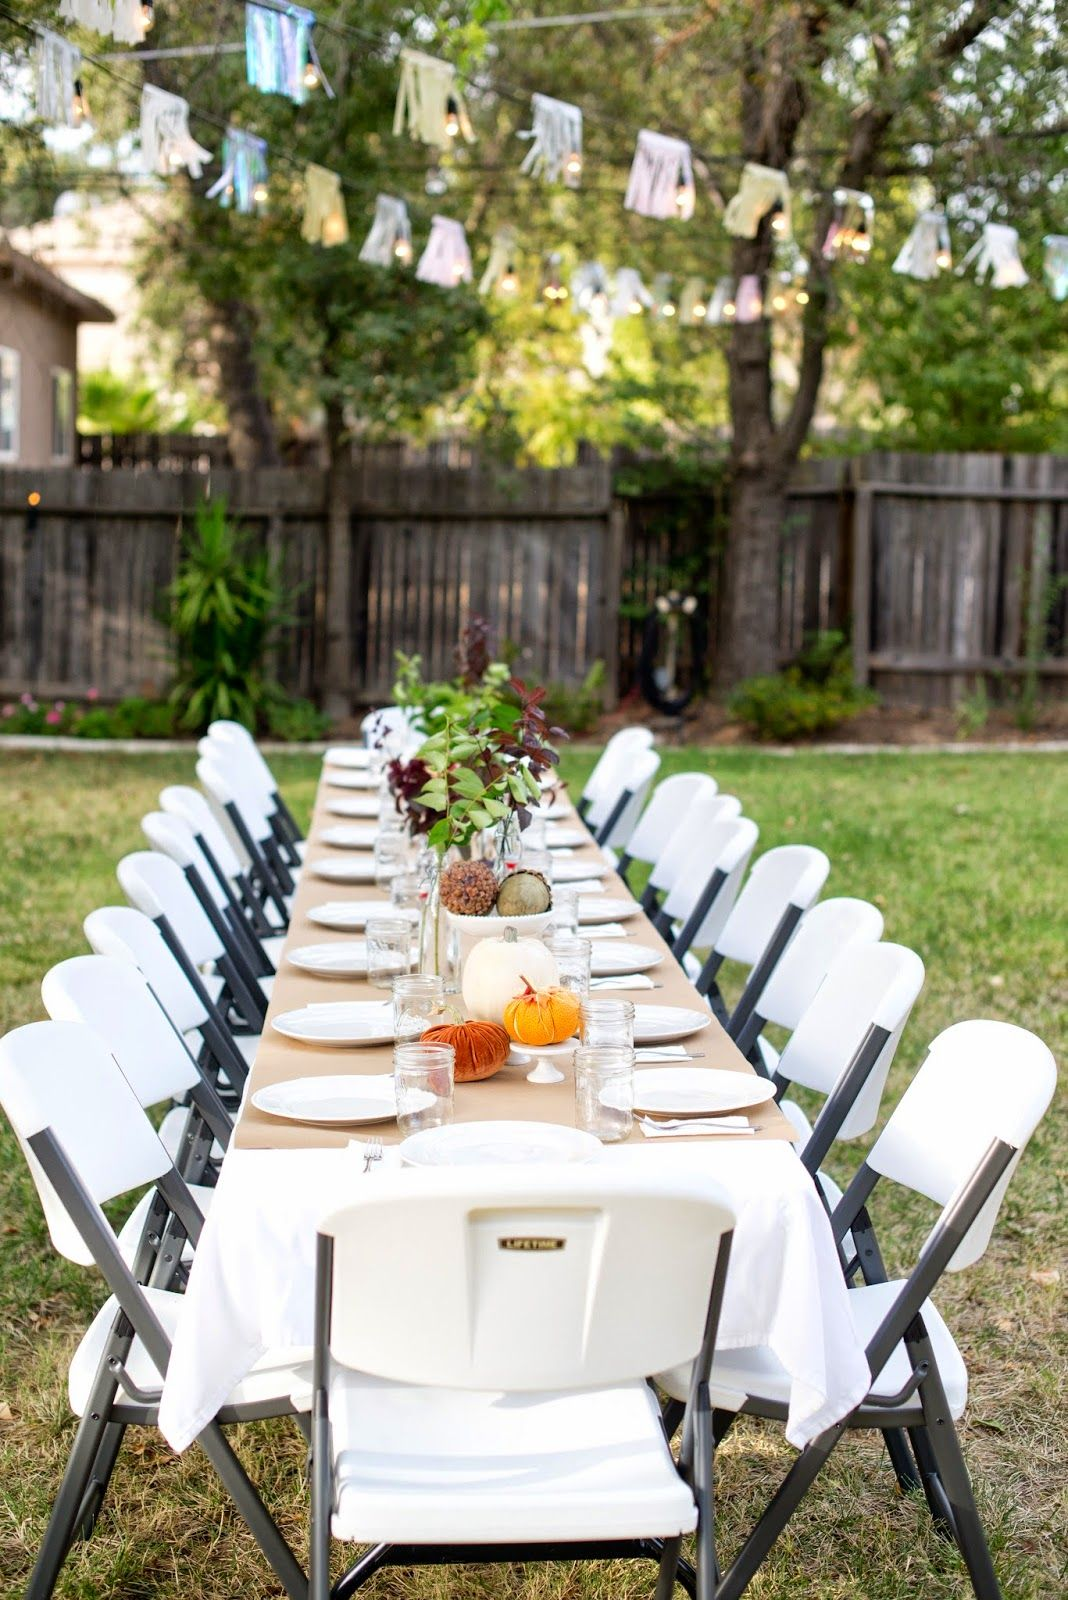 Fullsize Of Backyard Party Ideas Pinterest